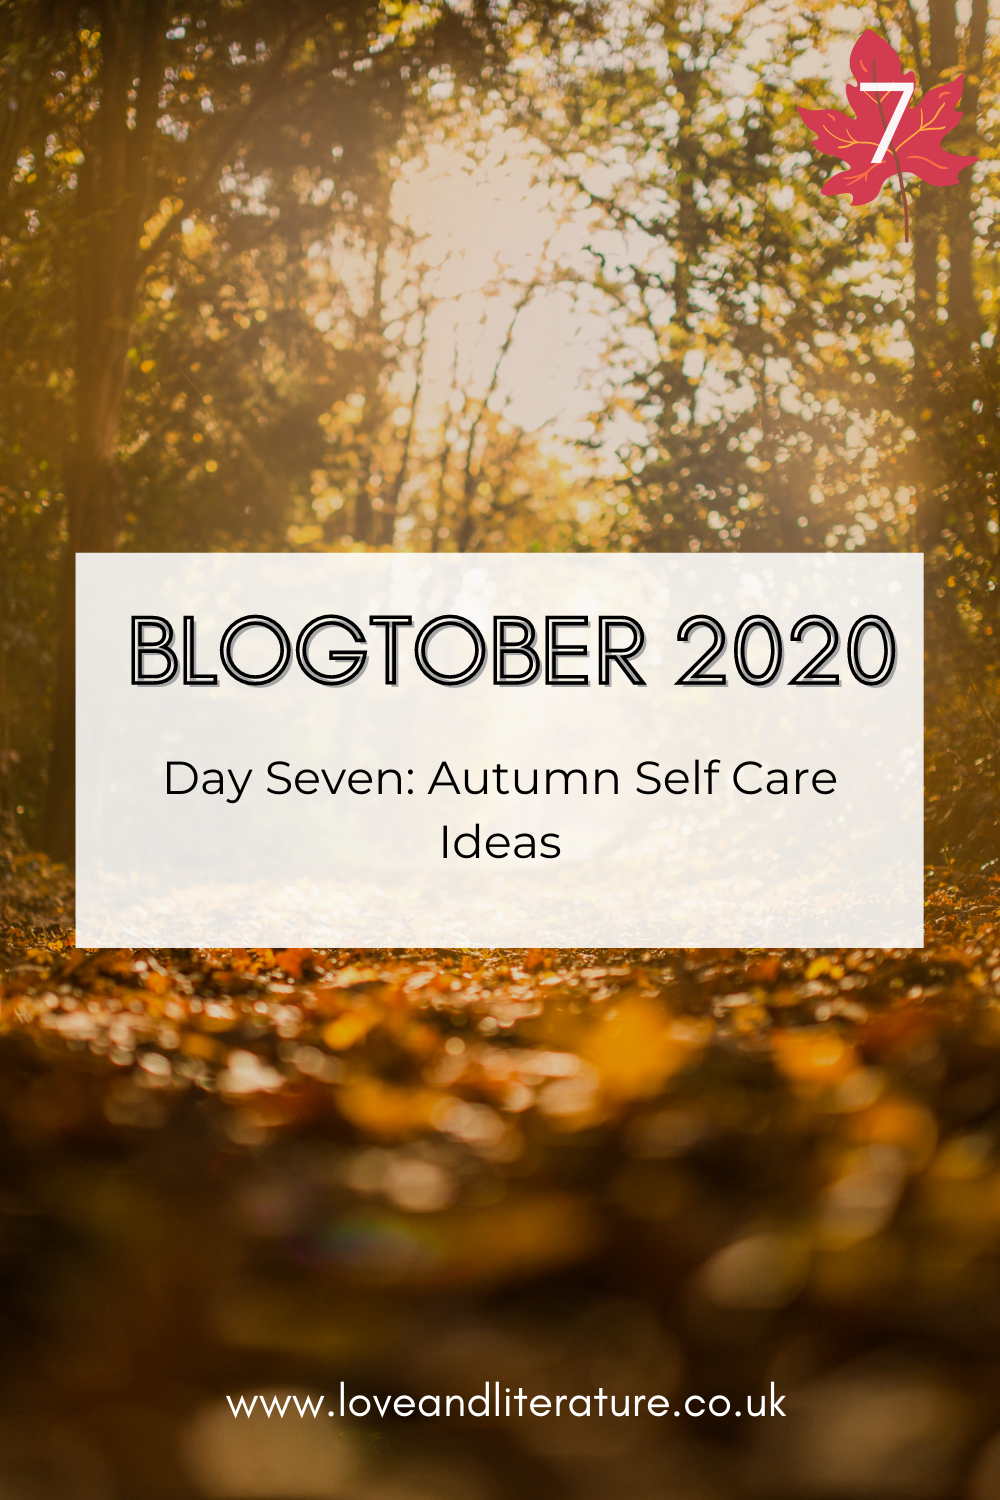 Autumn Self Care Ideas Pin, Leaves picture background, text at the front